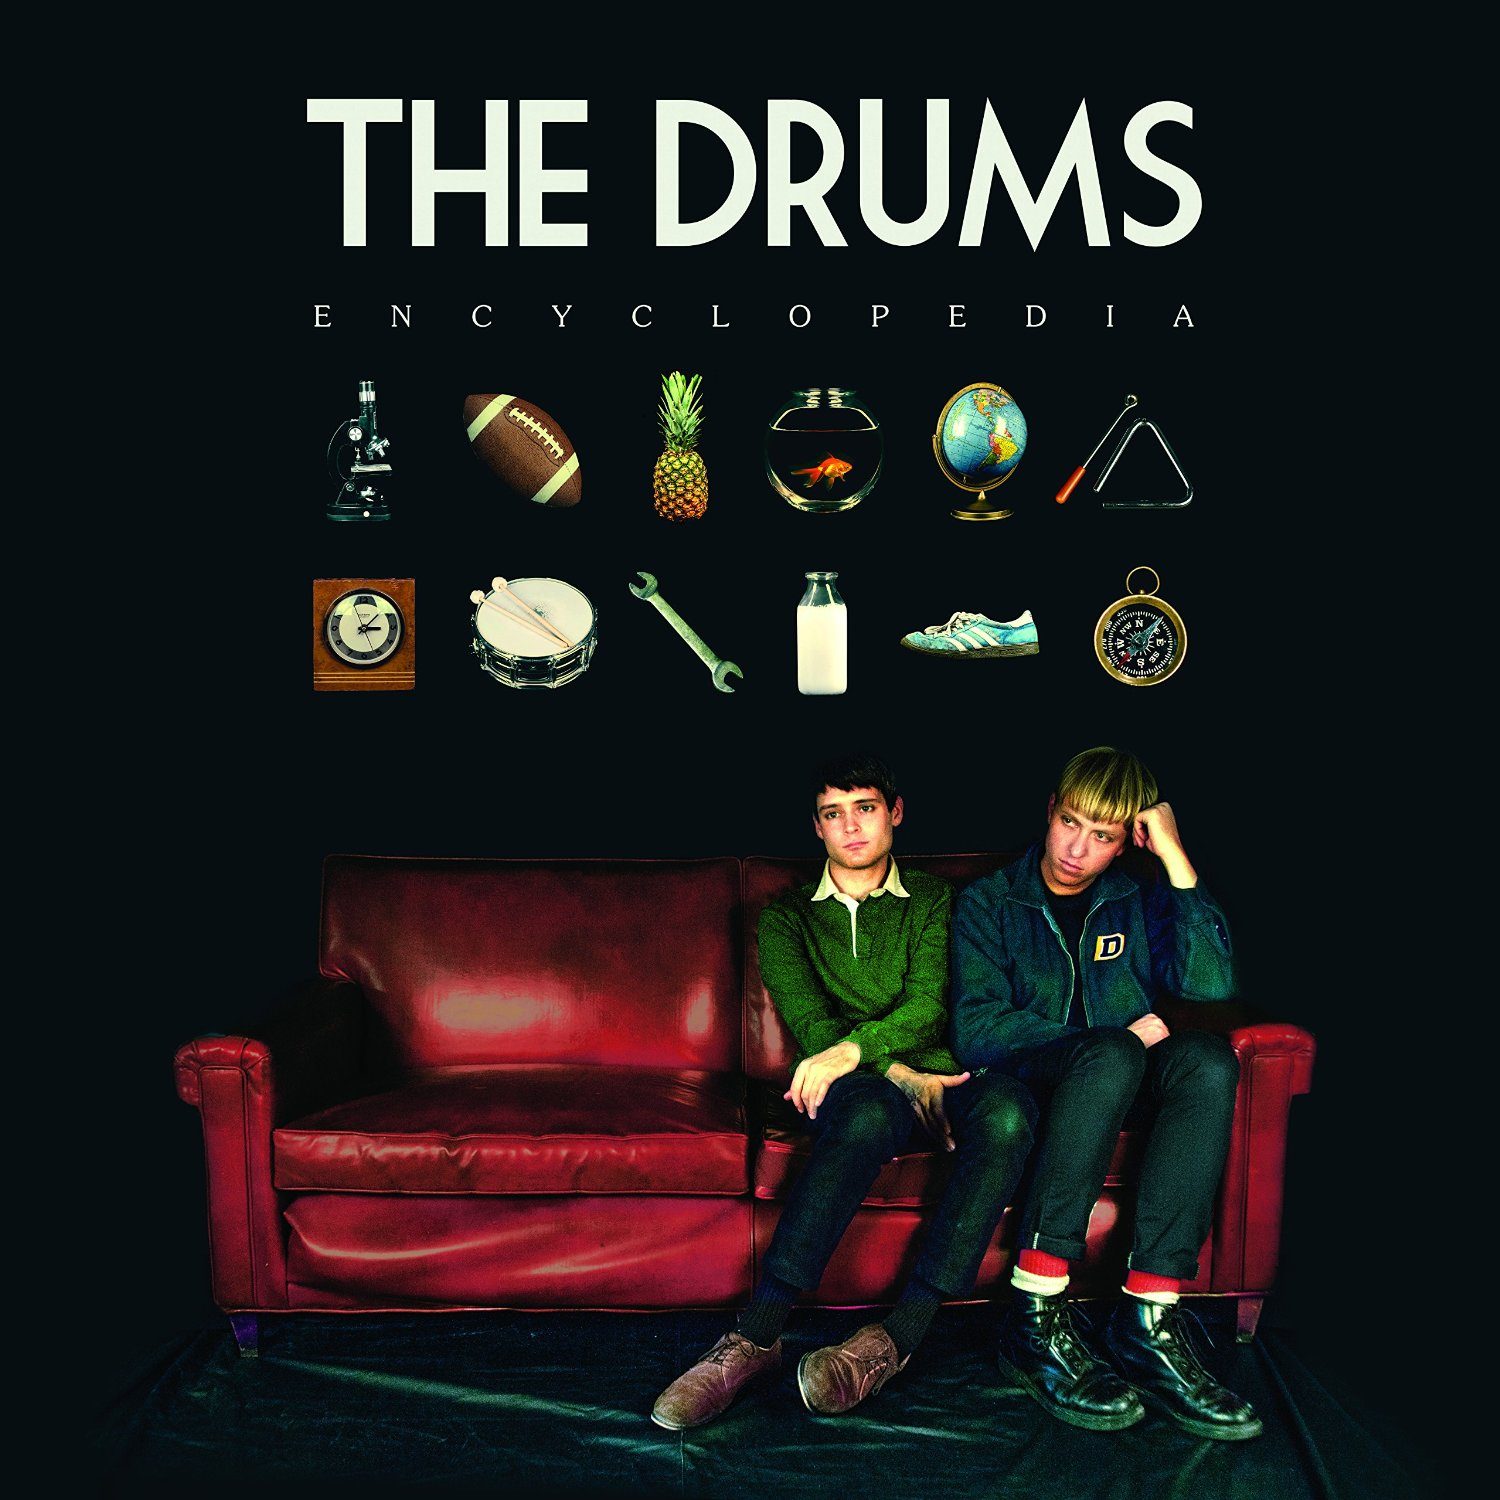 The Drums: The New Edition | Consequence of Sound